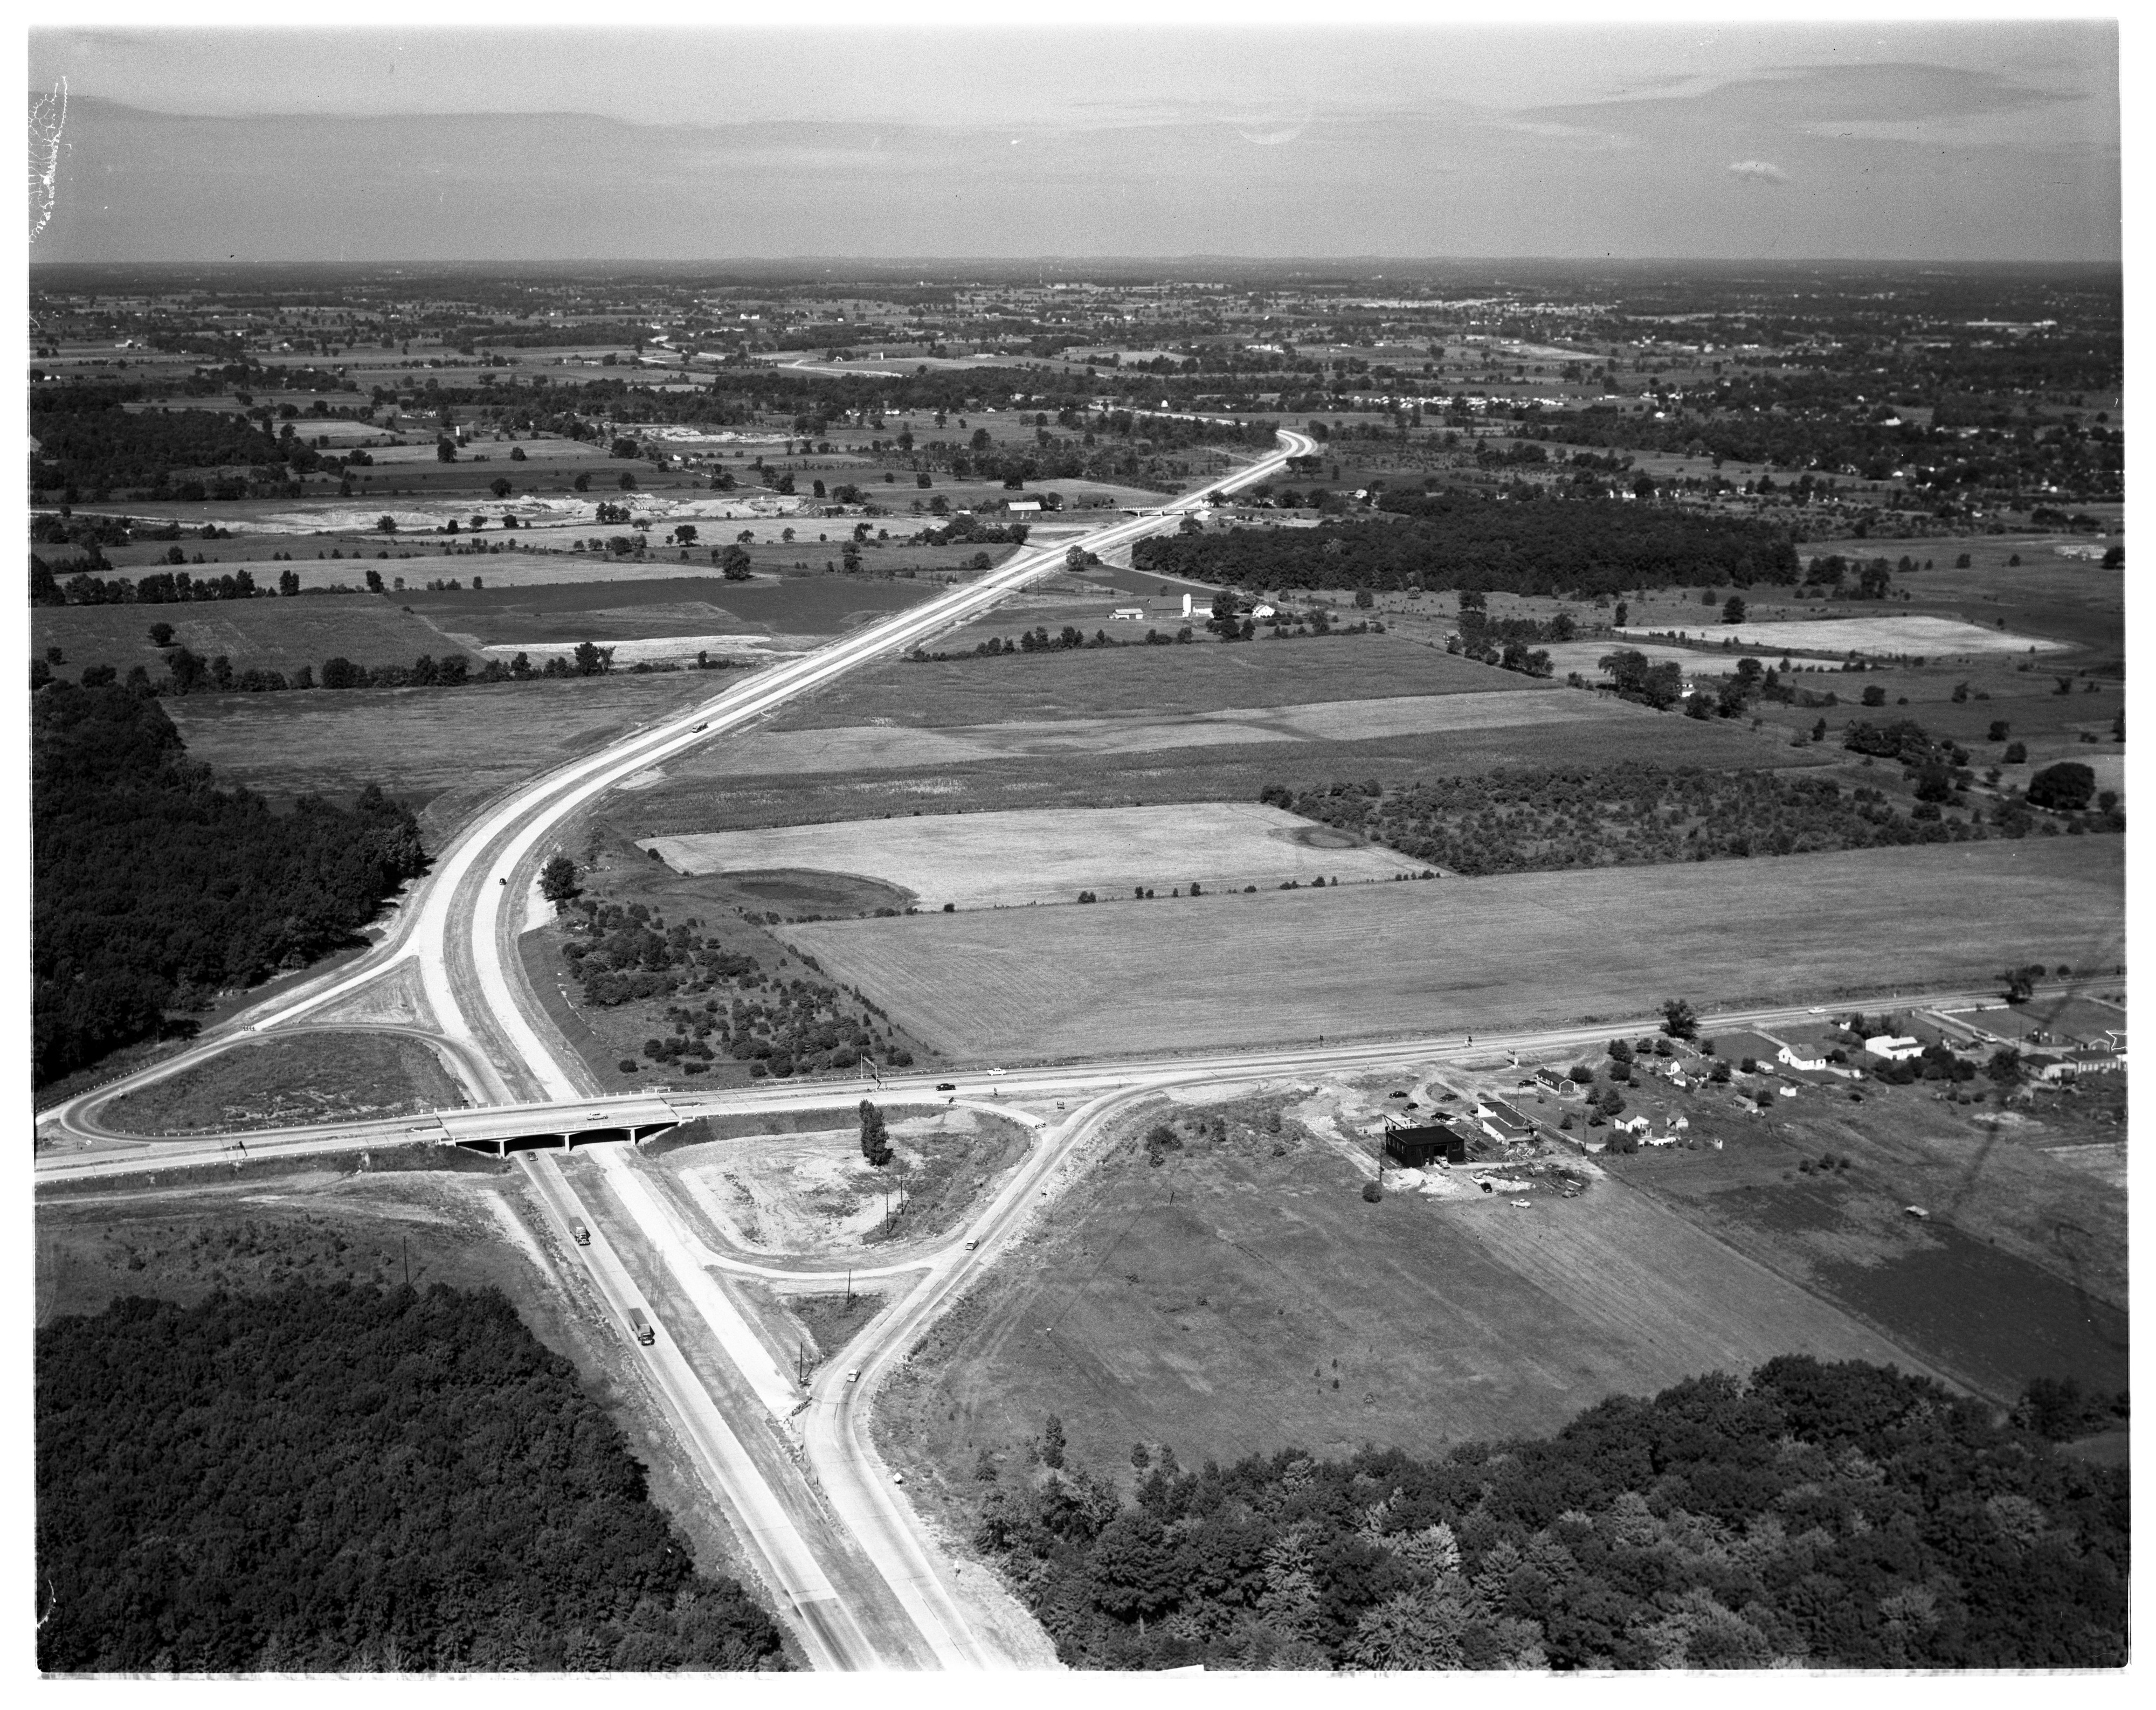 Aerial Photograph of the Willow Run Expressway Extension, August 1956 image